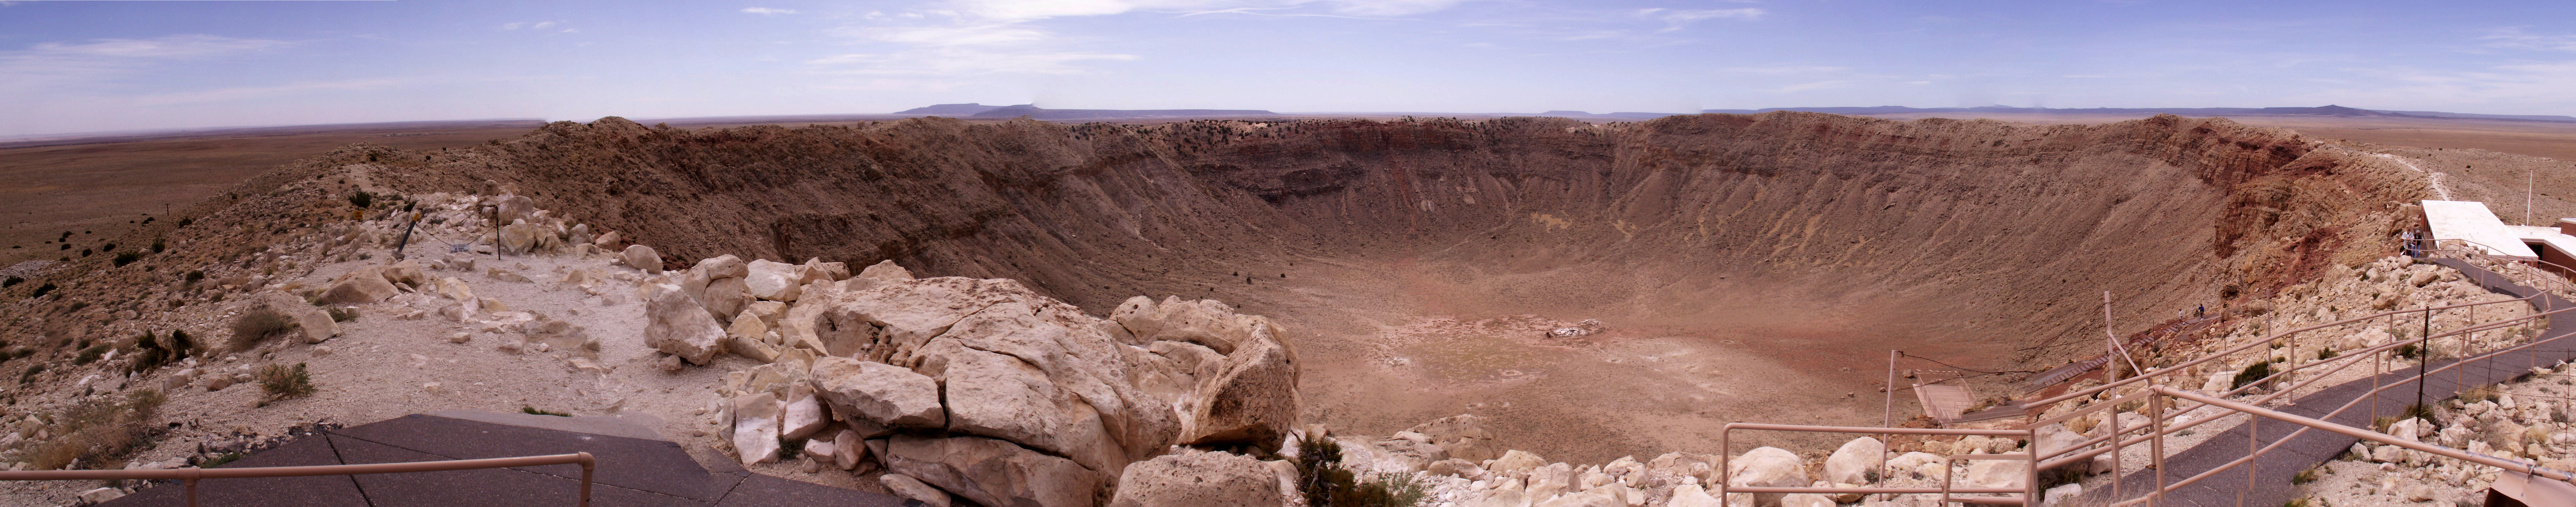 New research at Meteor Crater shows extreme temperatures and pressures during the impact that created the crater 49,000 years ago. Image credit: Aaron Cavosie Image credit: None